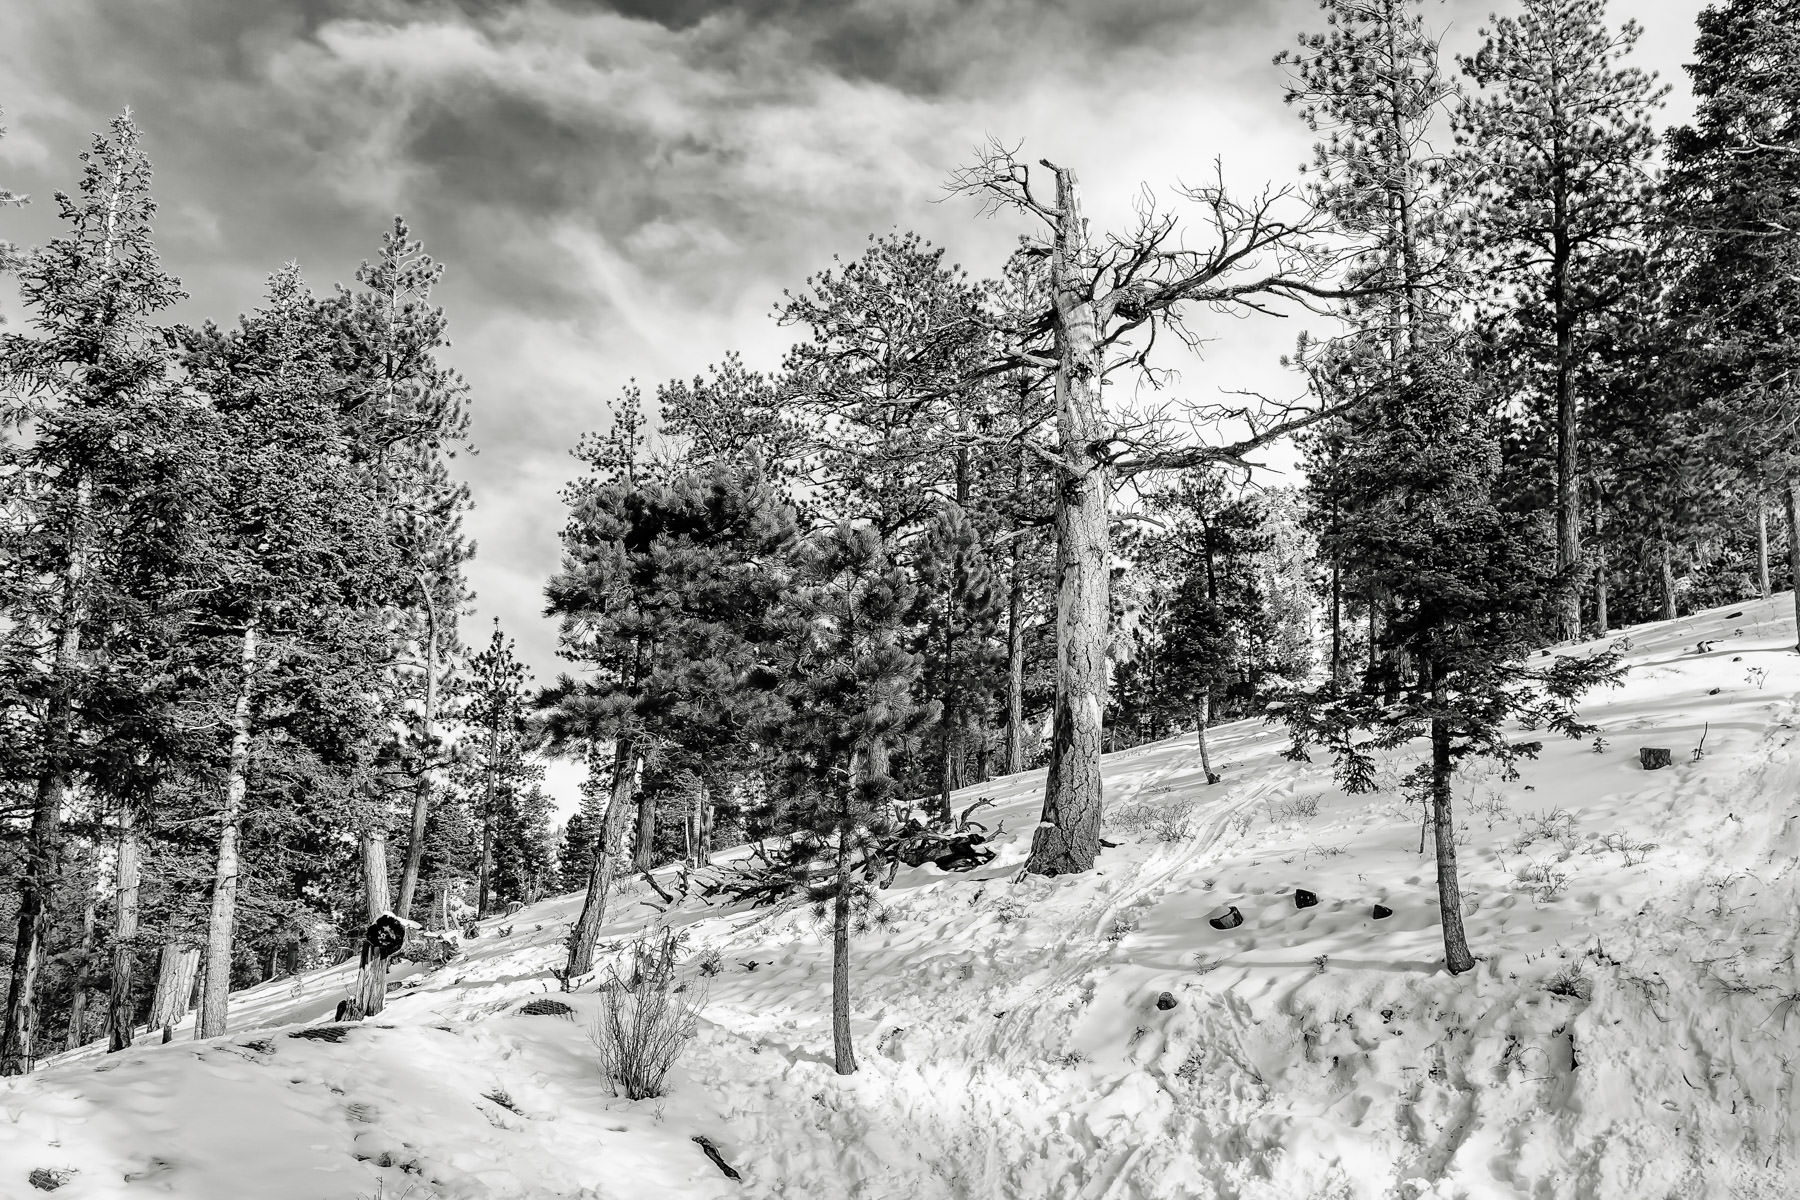 Trees line the snow-covered foothills of Nevada's Mount Charleston.